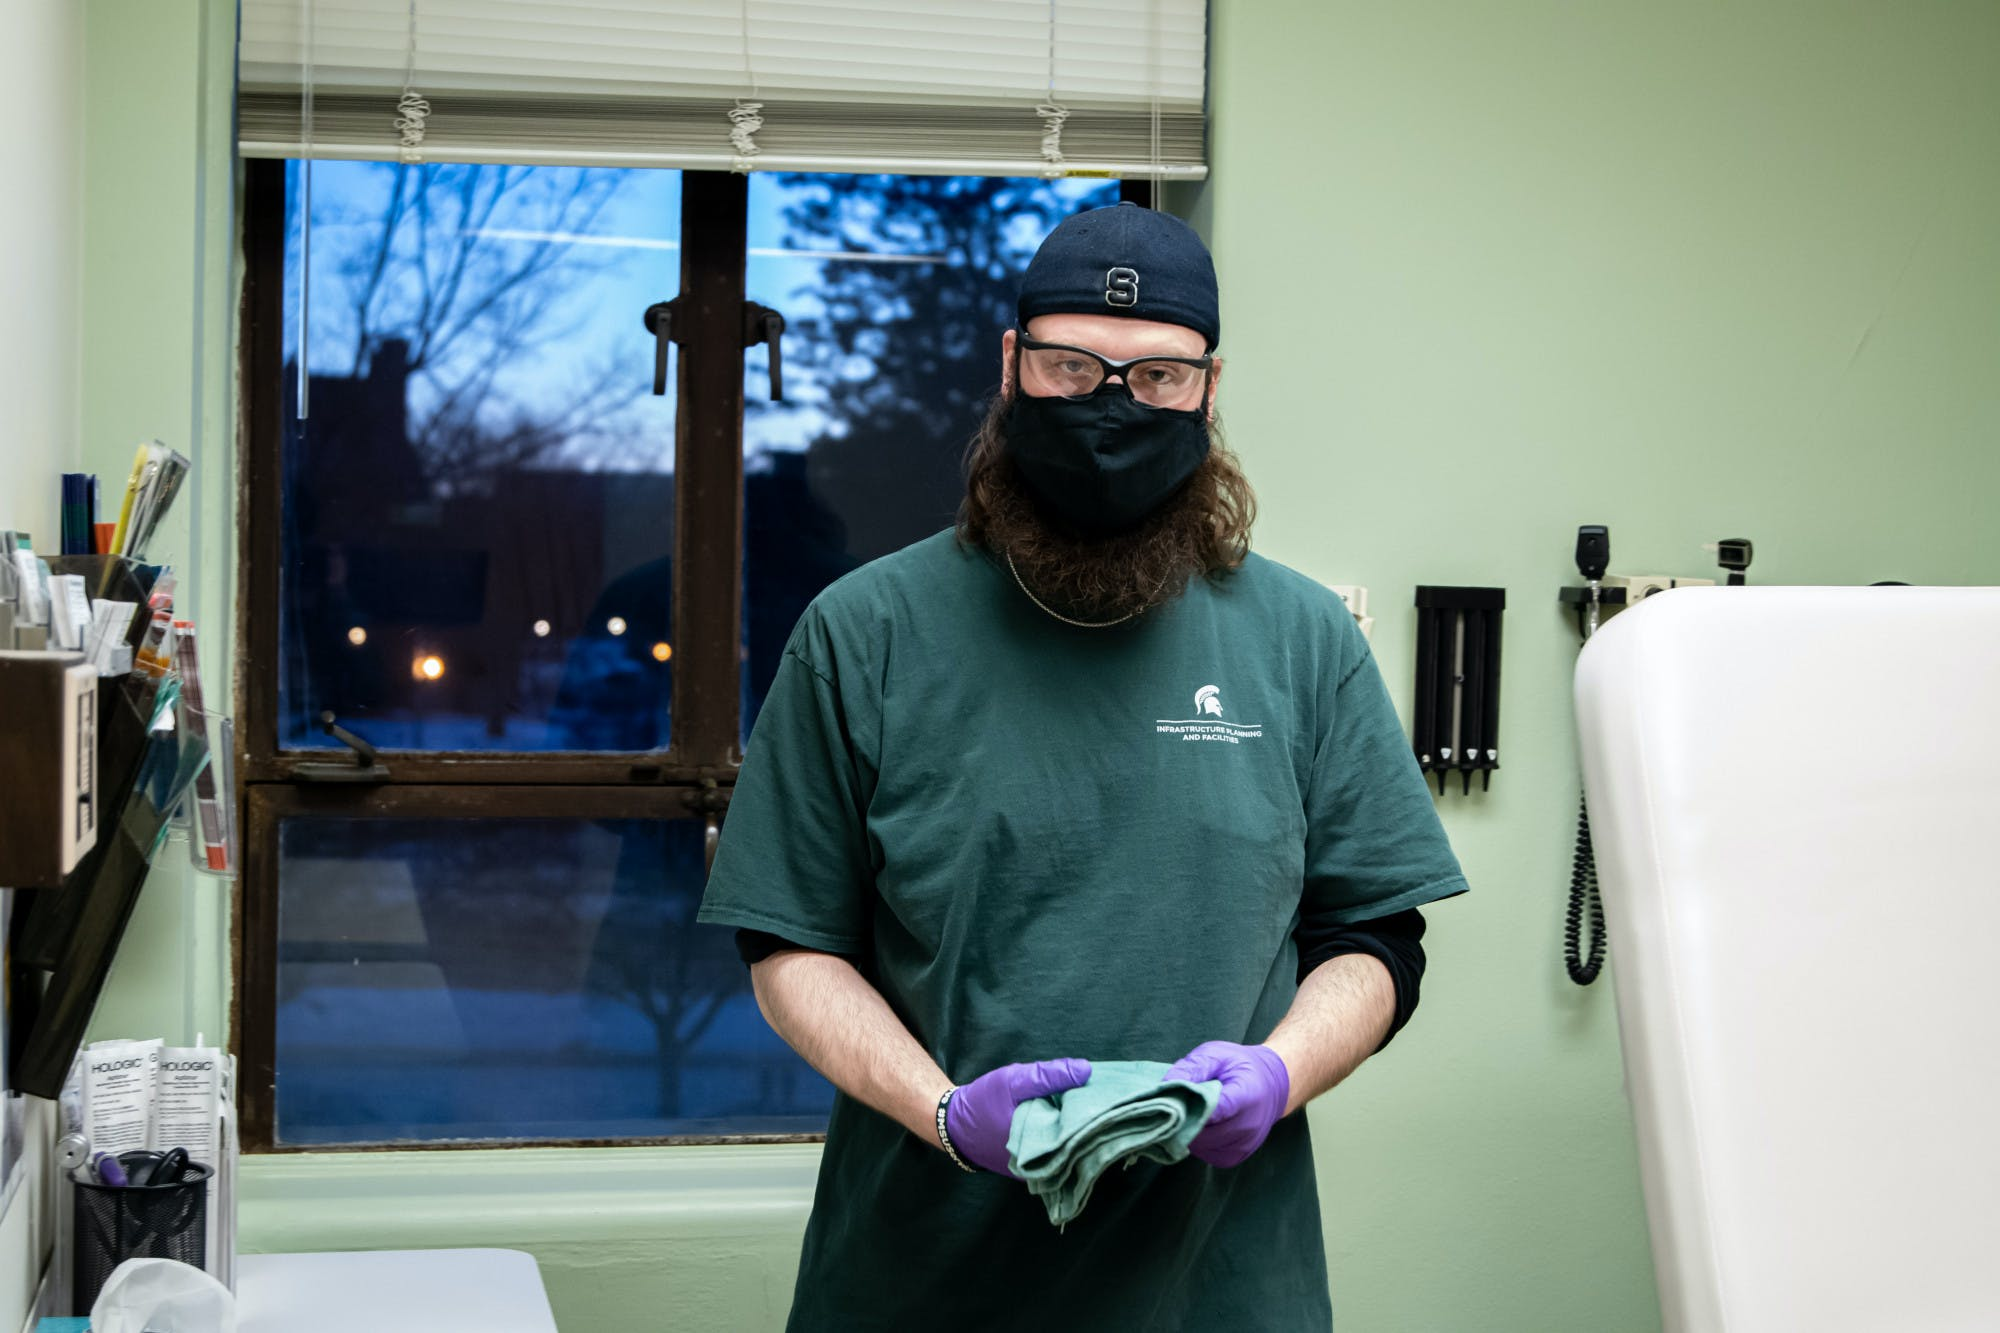 A bearded person wearing a black face mask, a backwards black Spartan cap, a green Michigan State Infrastructure Planning and Facilities t-shirt, and purple exam gloves holds a folded cloth in a medical appointment room.